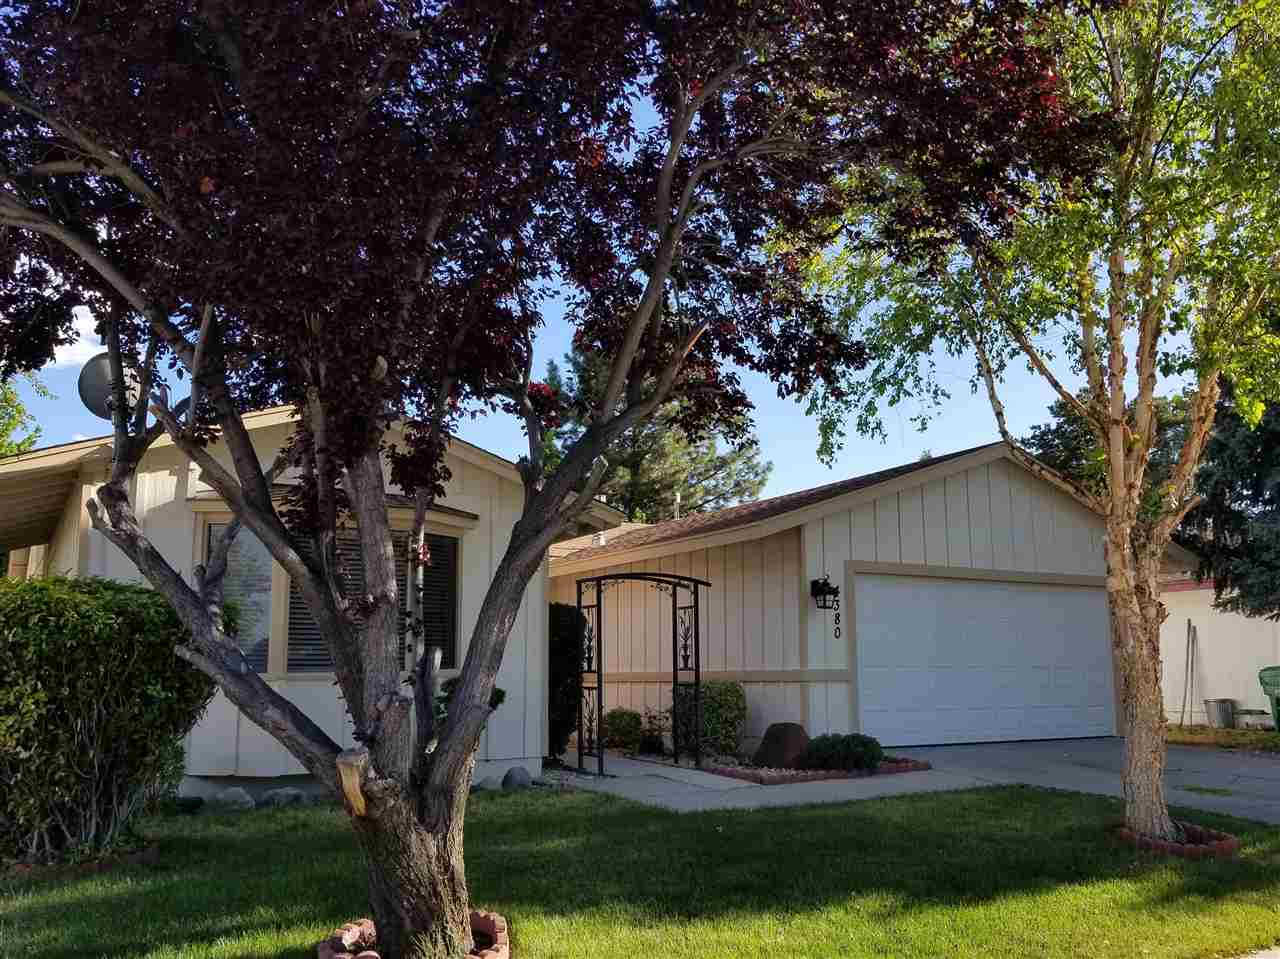 4380 Mira Loma, Reno, NV 89502-5327 now has a new price of $335,000!